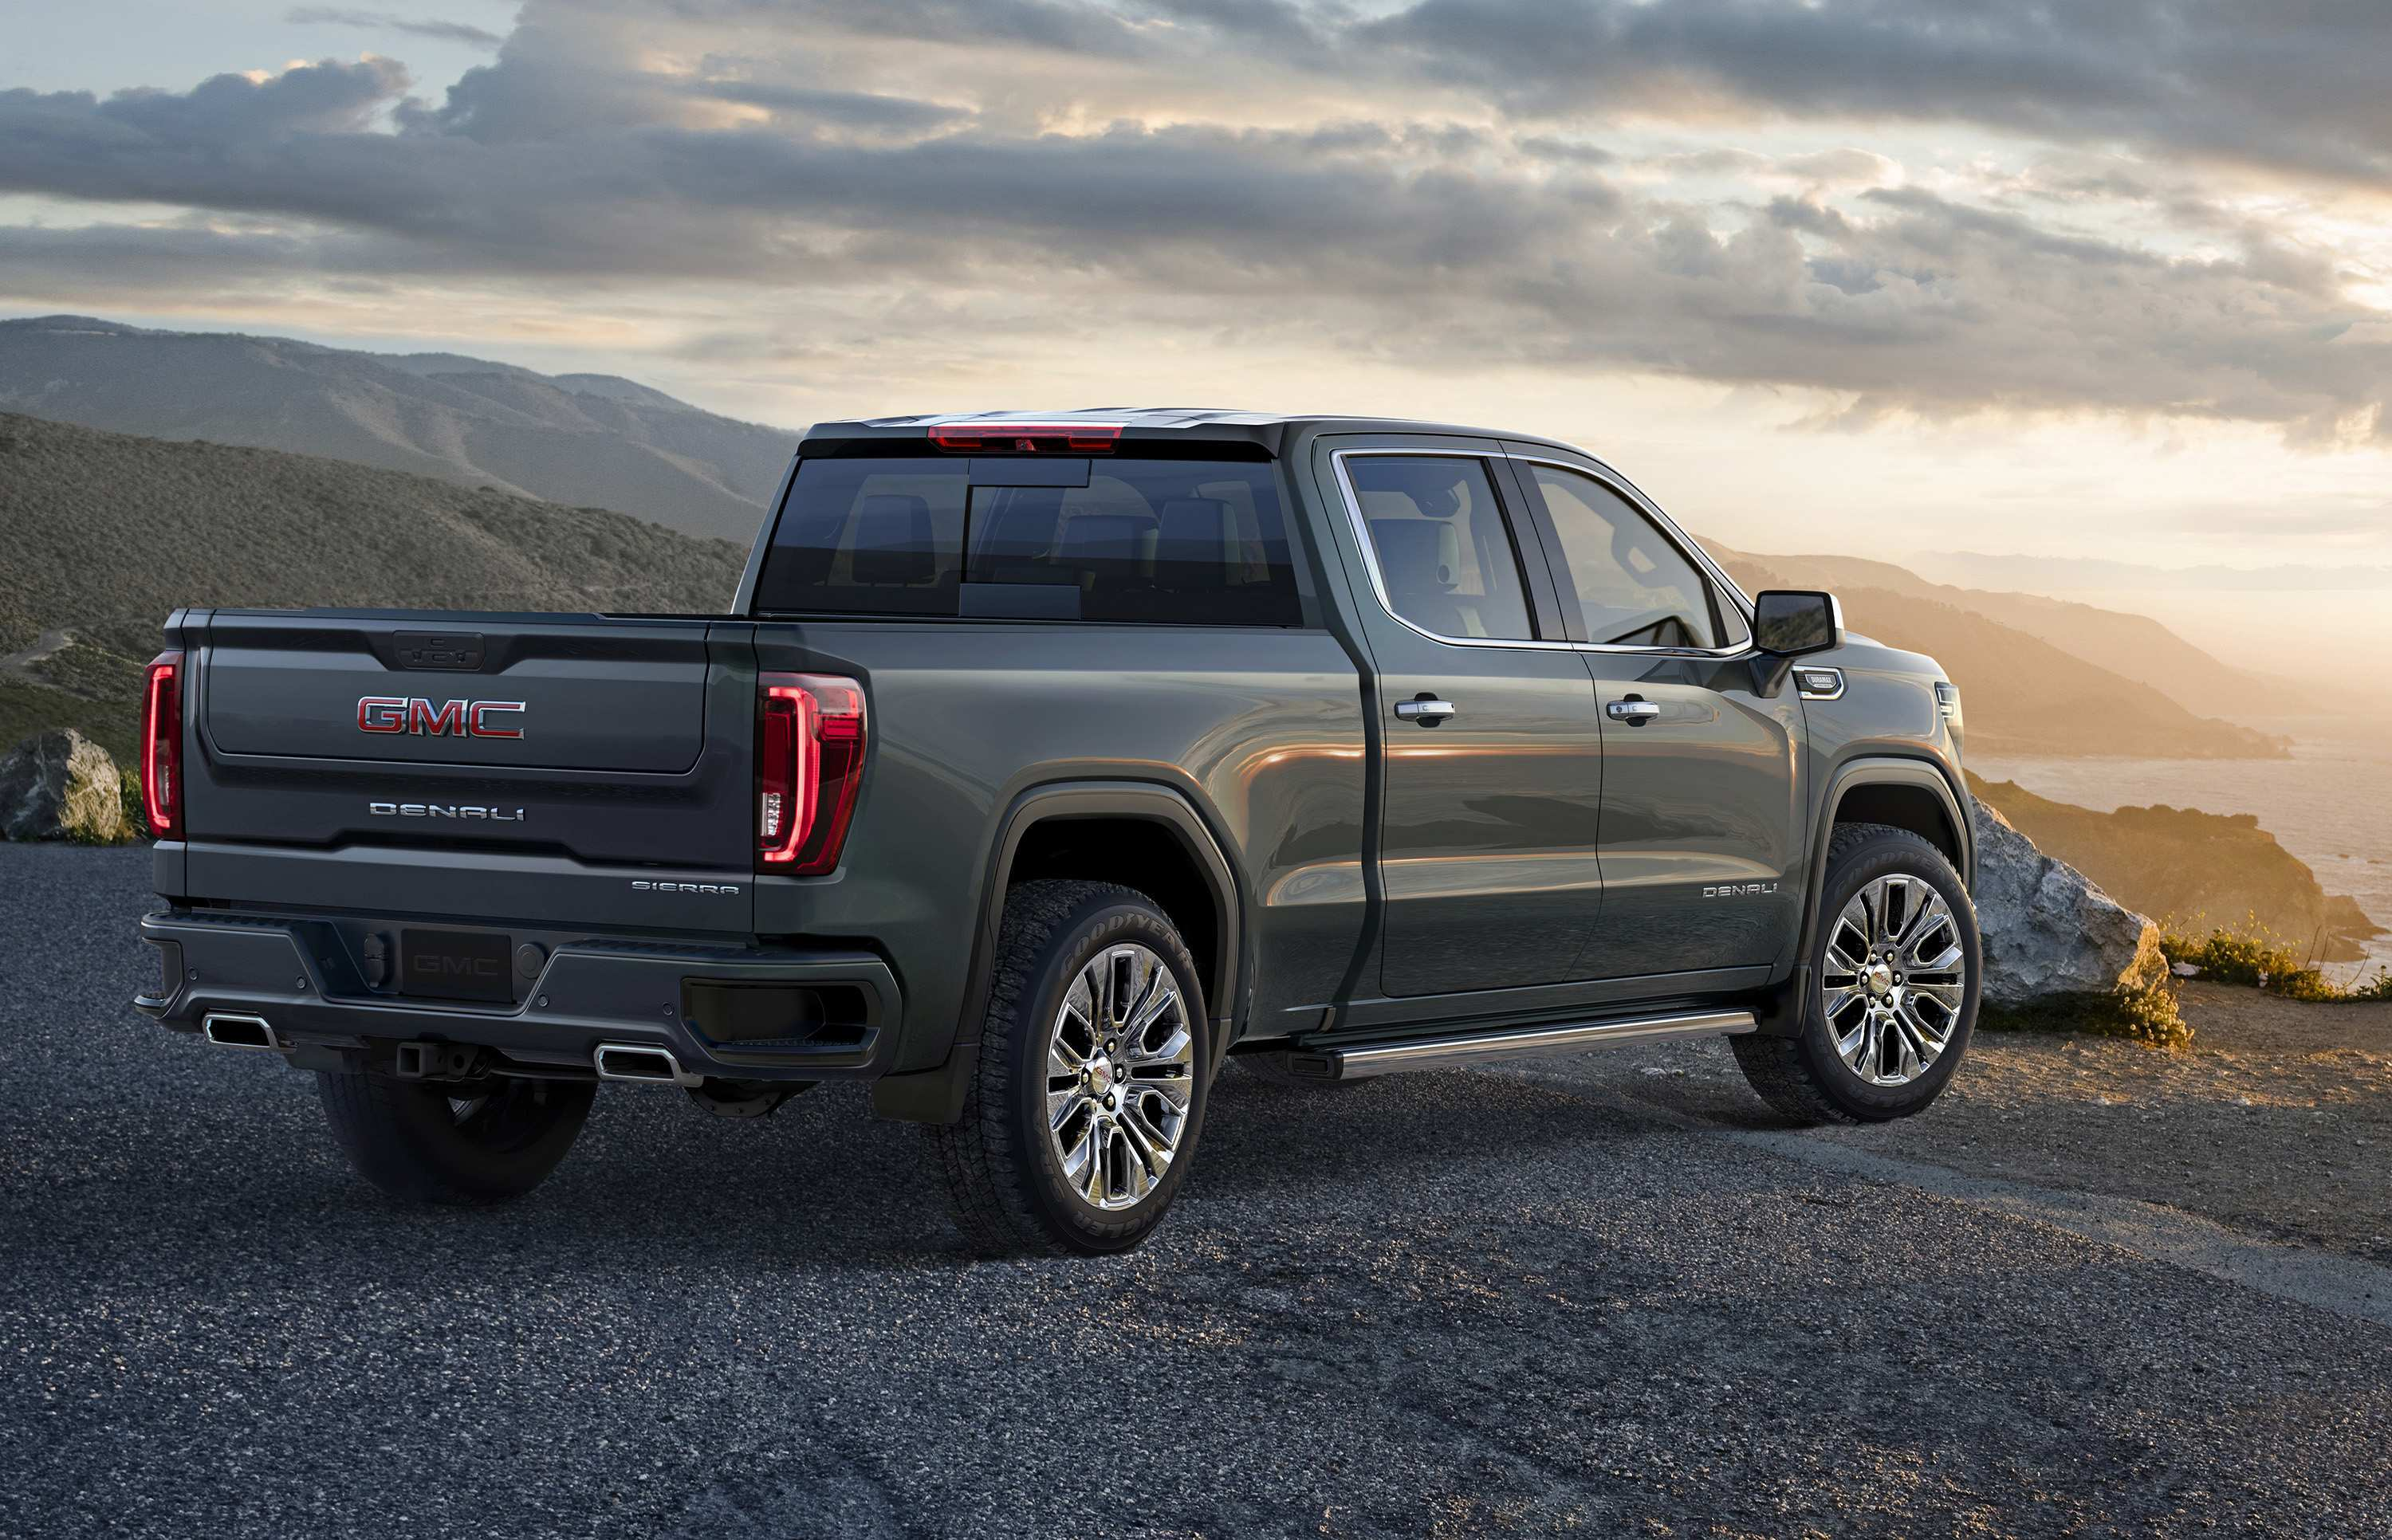 60 New 2019 Gmc Sierra Images Reviews